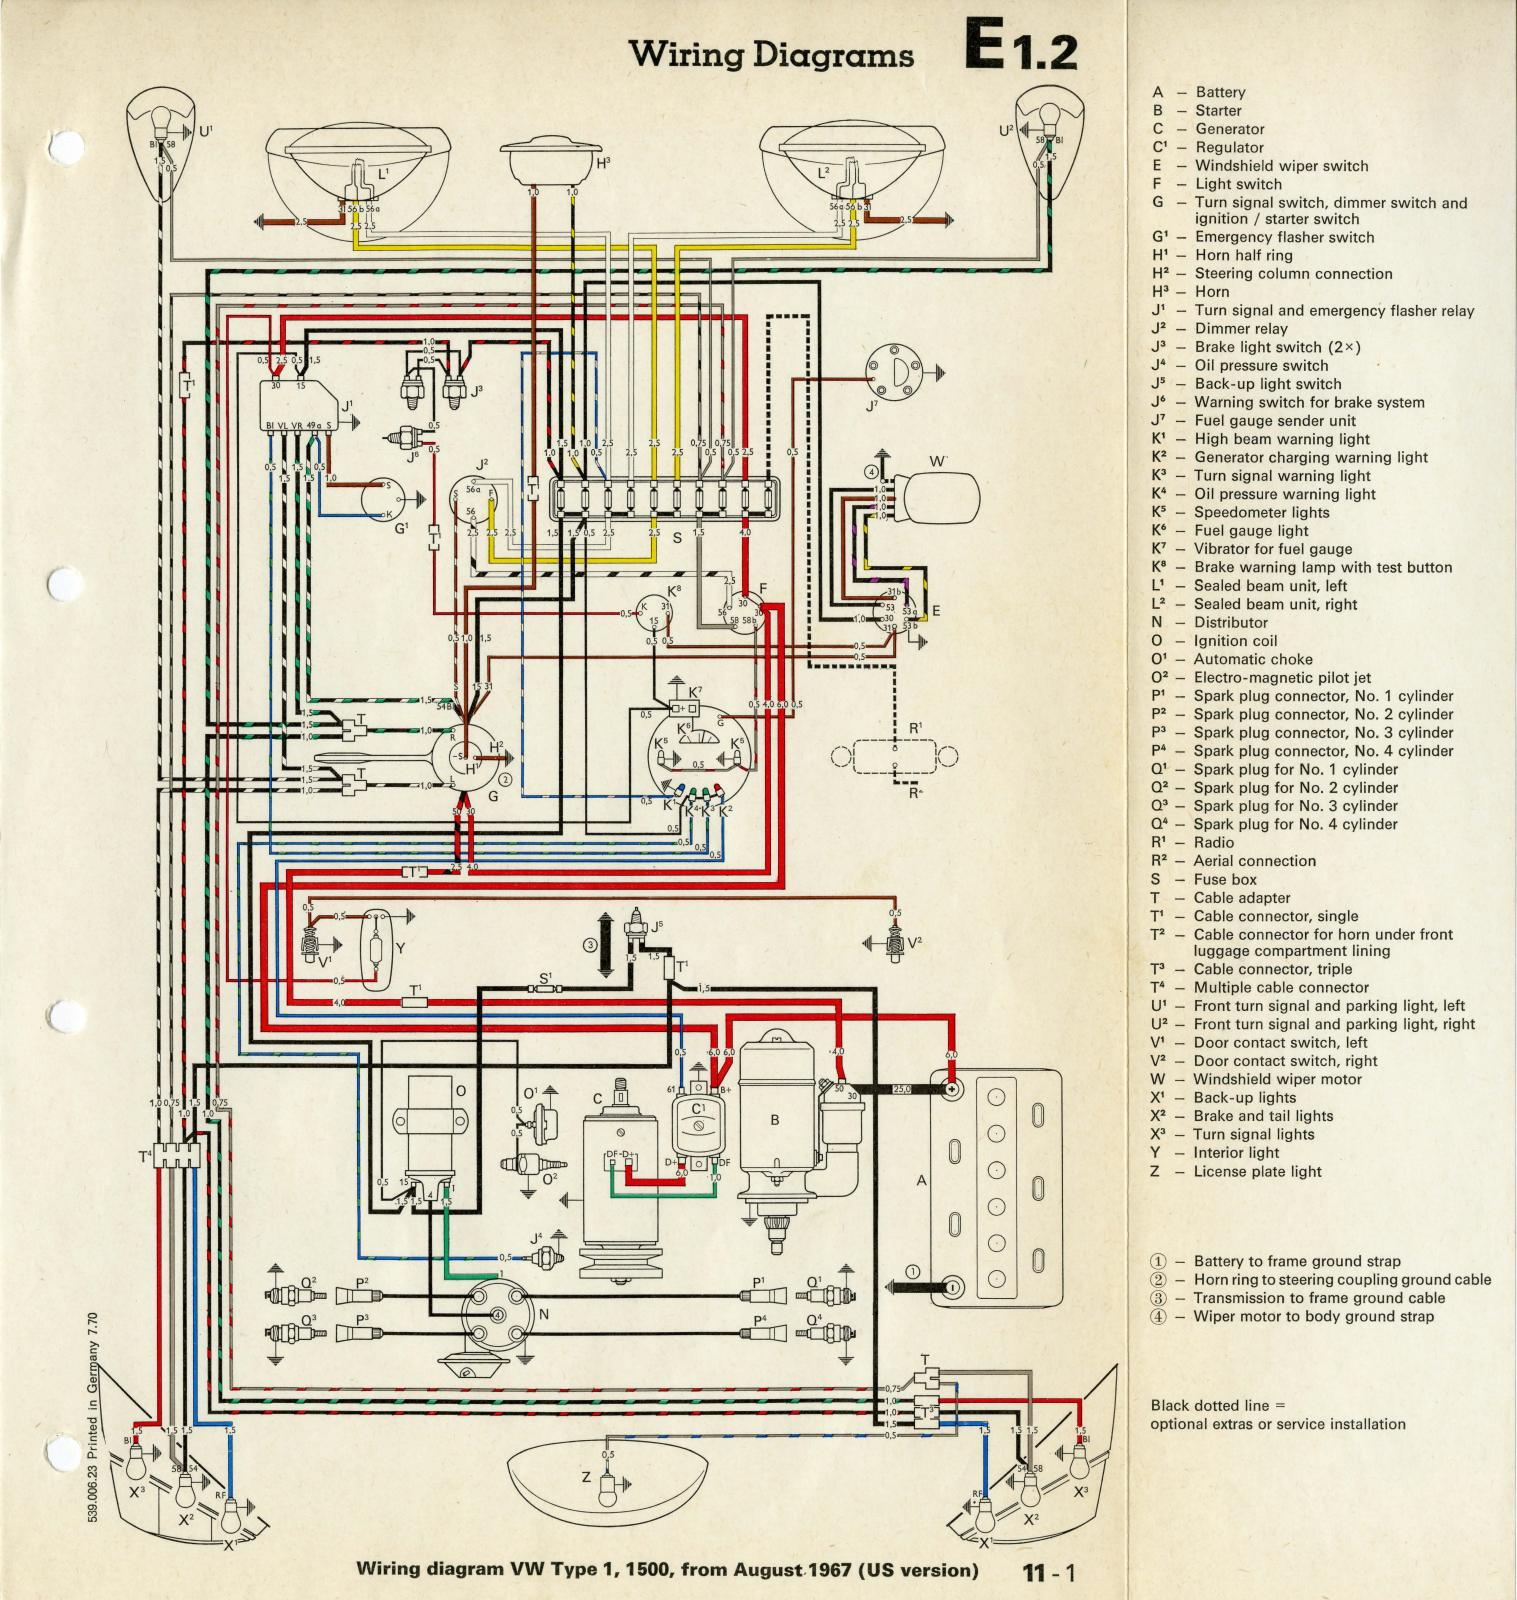 beetle wiring diagram for 1975 thesamba.com :: beetle - late model/super - 1968-up - view ...